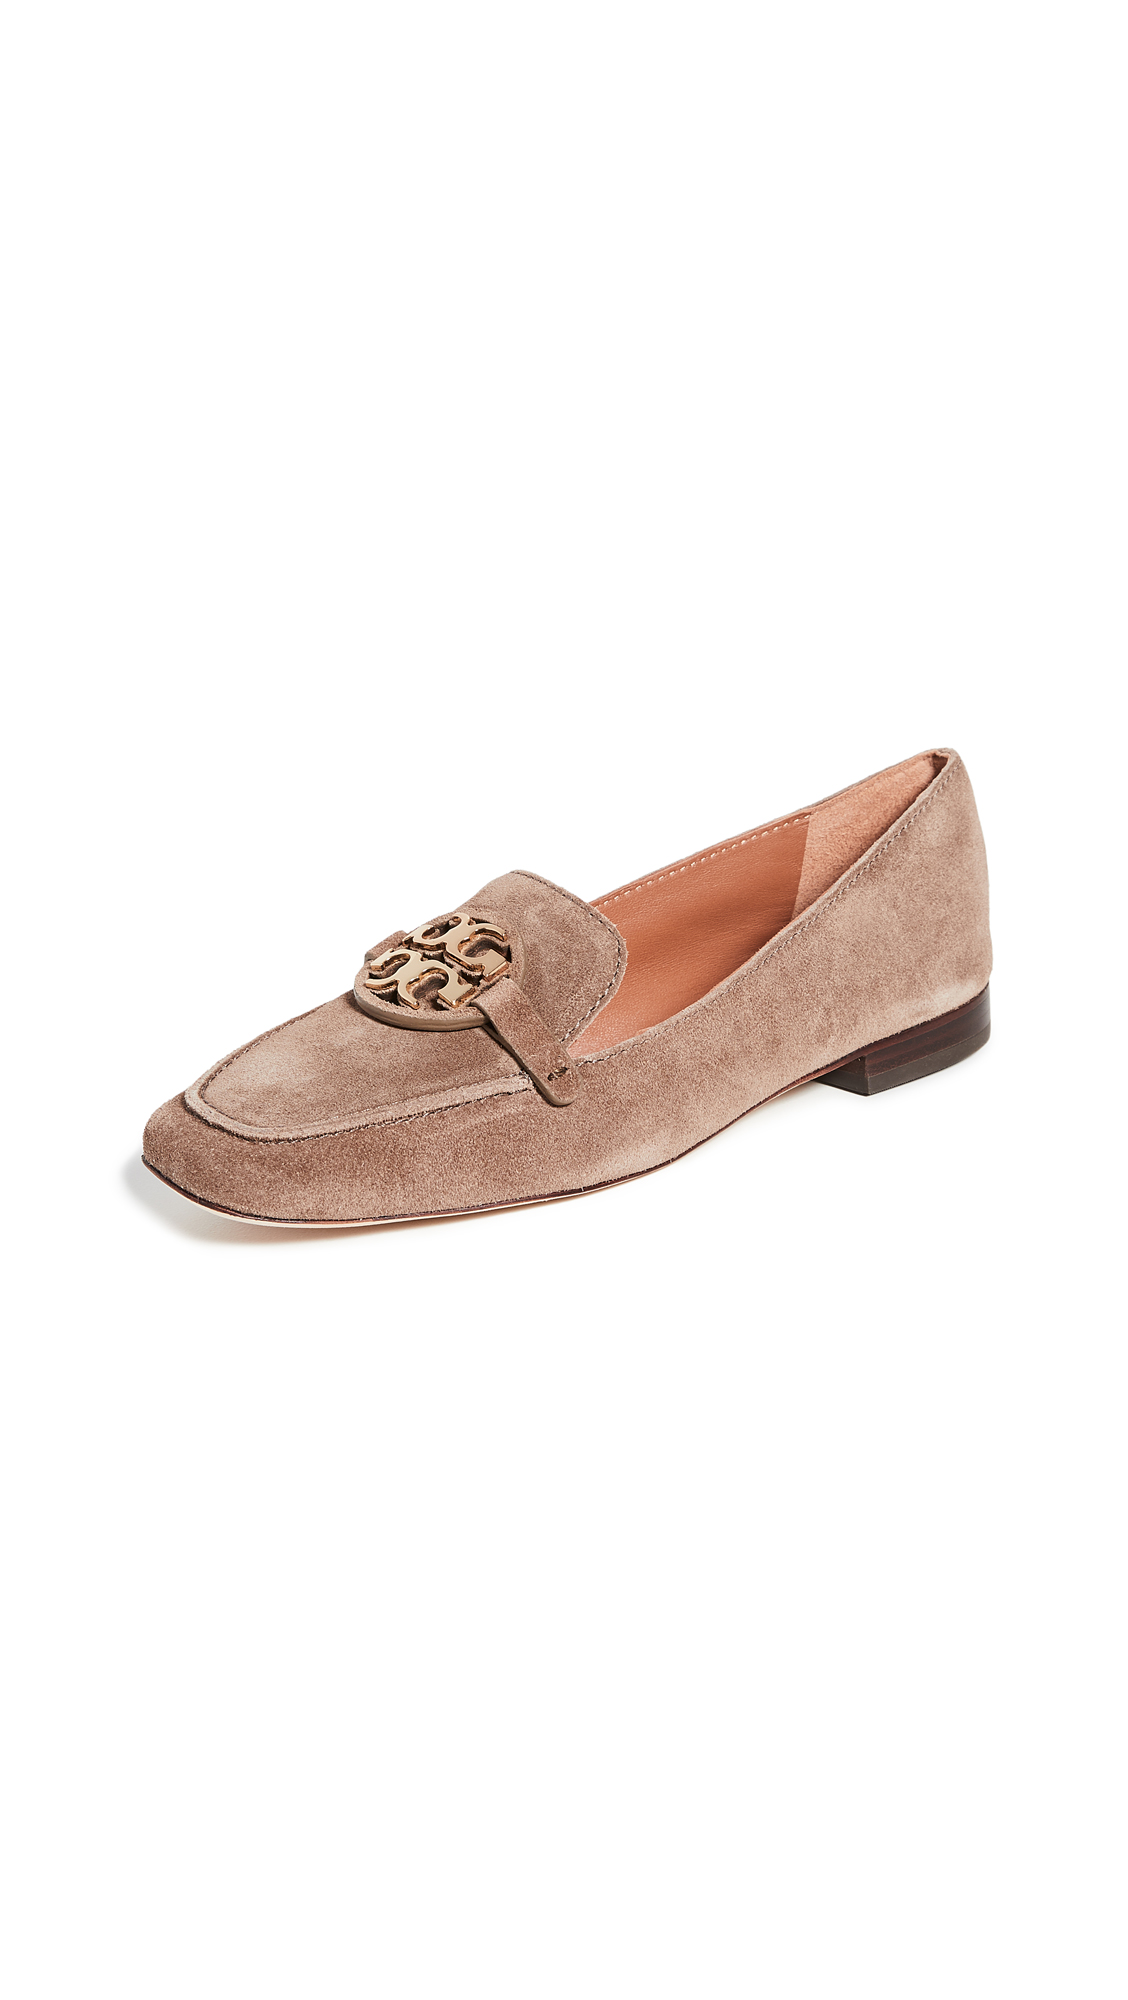 Buy Tory Burch Metal Miller 15MM Loafers online, shop Tory Burch